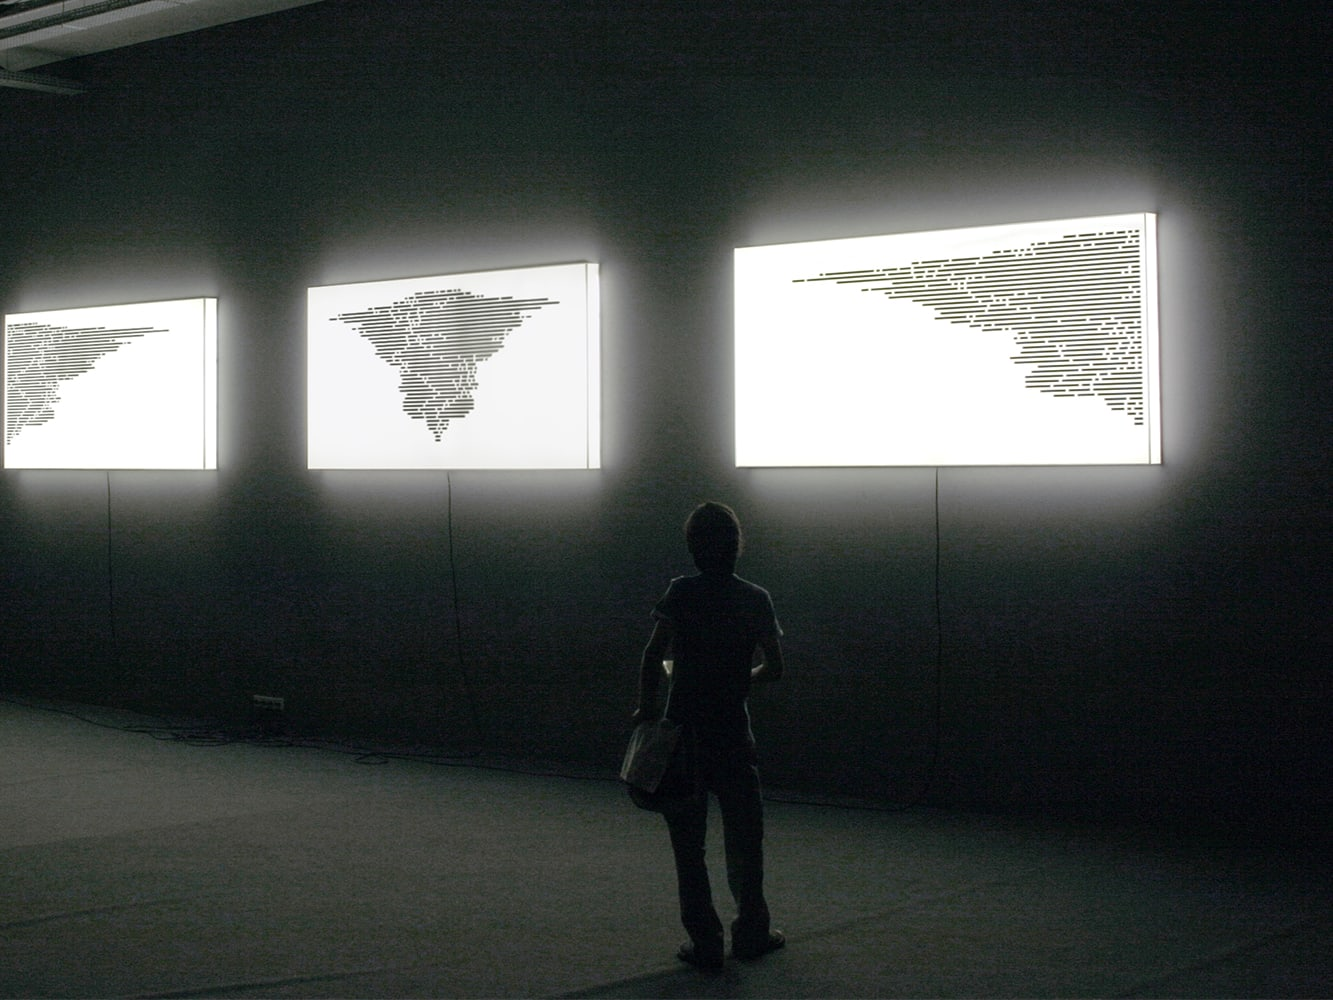 People looking at an art installation of light boxes with world maps printed on them